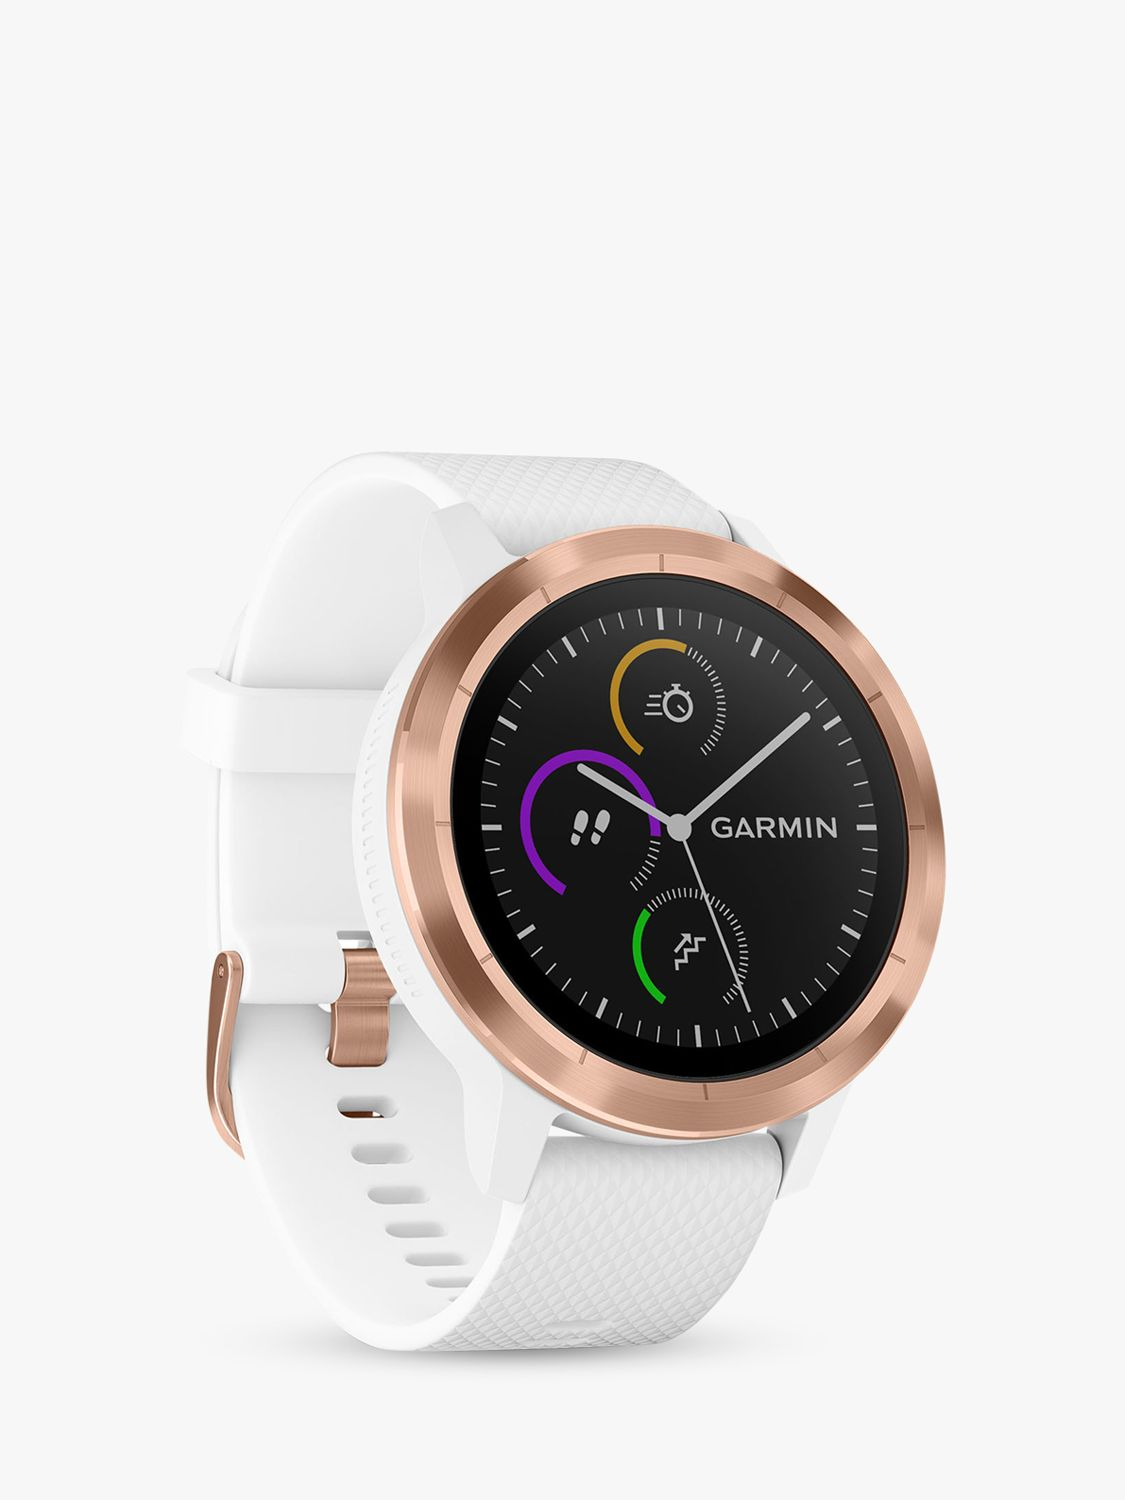 Garmin Garmin Vivoactive 3 GPS Smartwatch with Contactless Payment and HR, White/Rose Gold